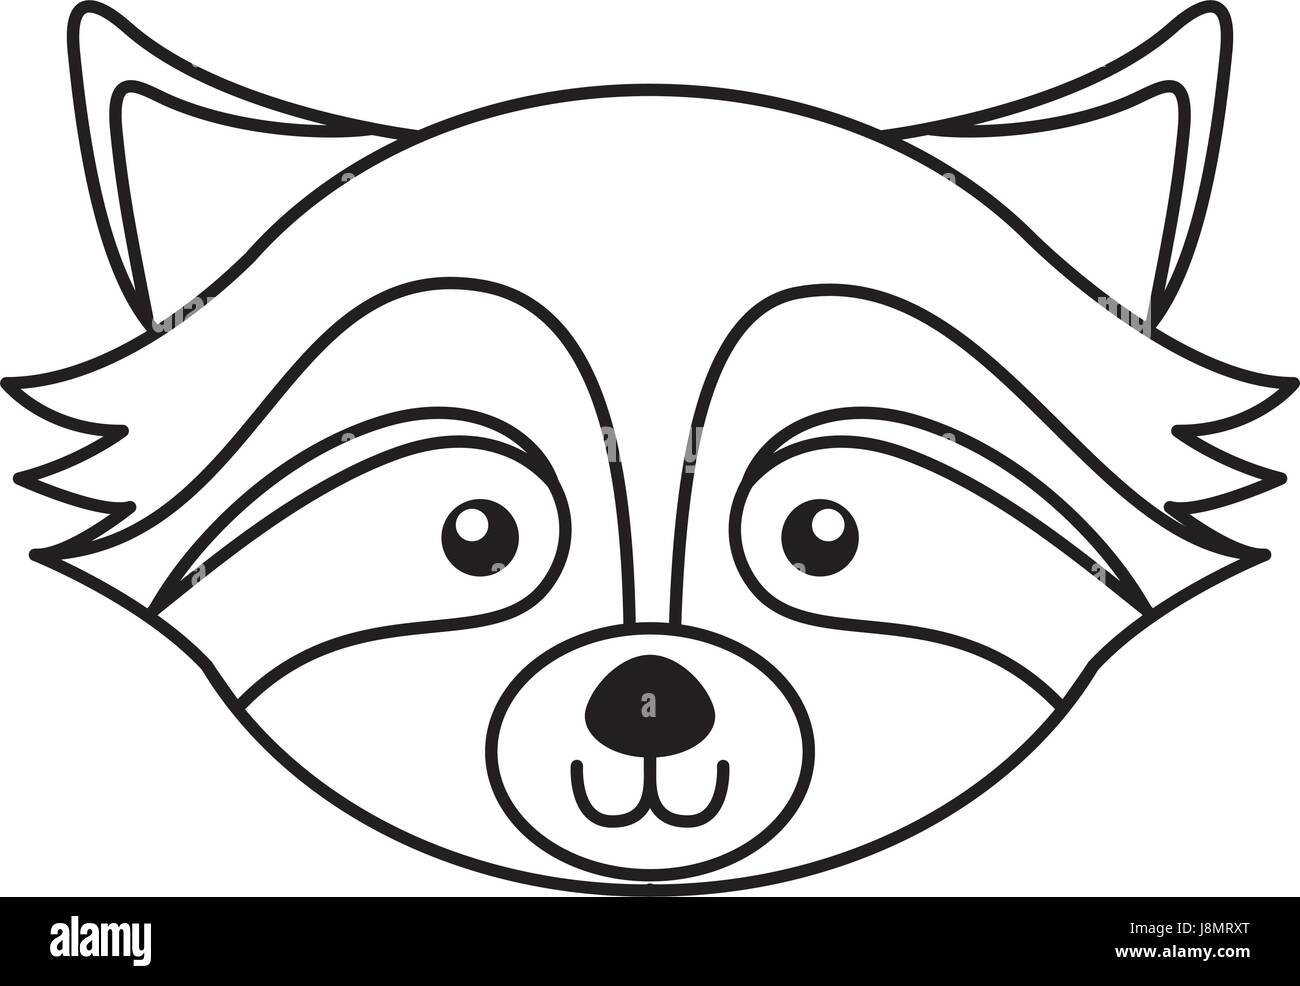 cute raccoon face cartoon Stock Vector Art & Illustration ... Raccoon Face Coloring Pages